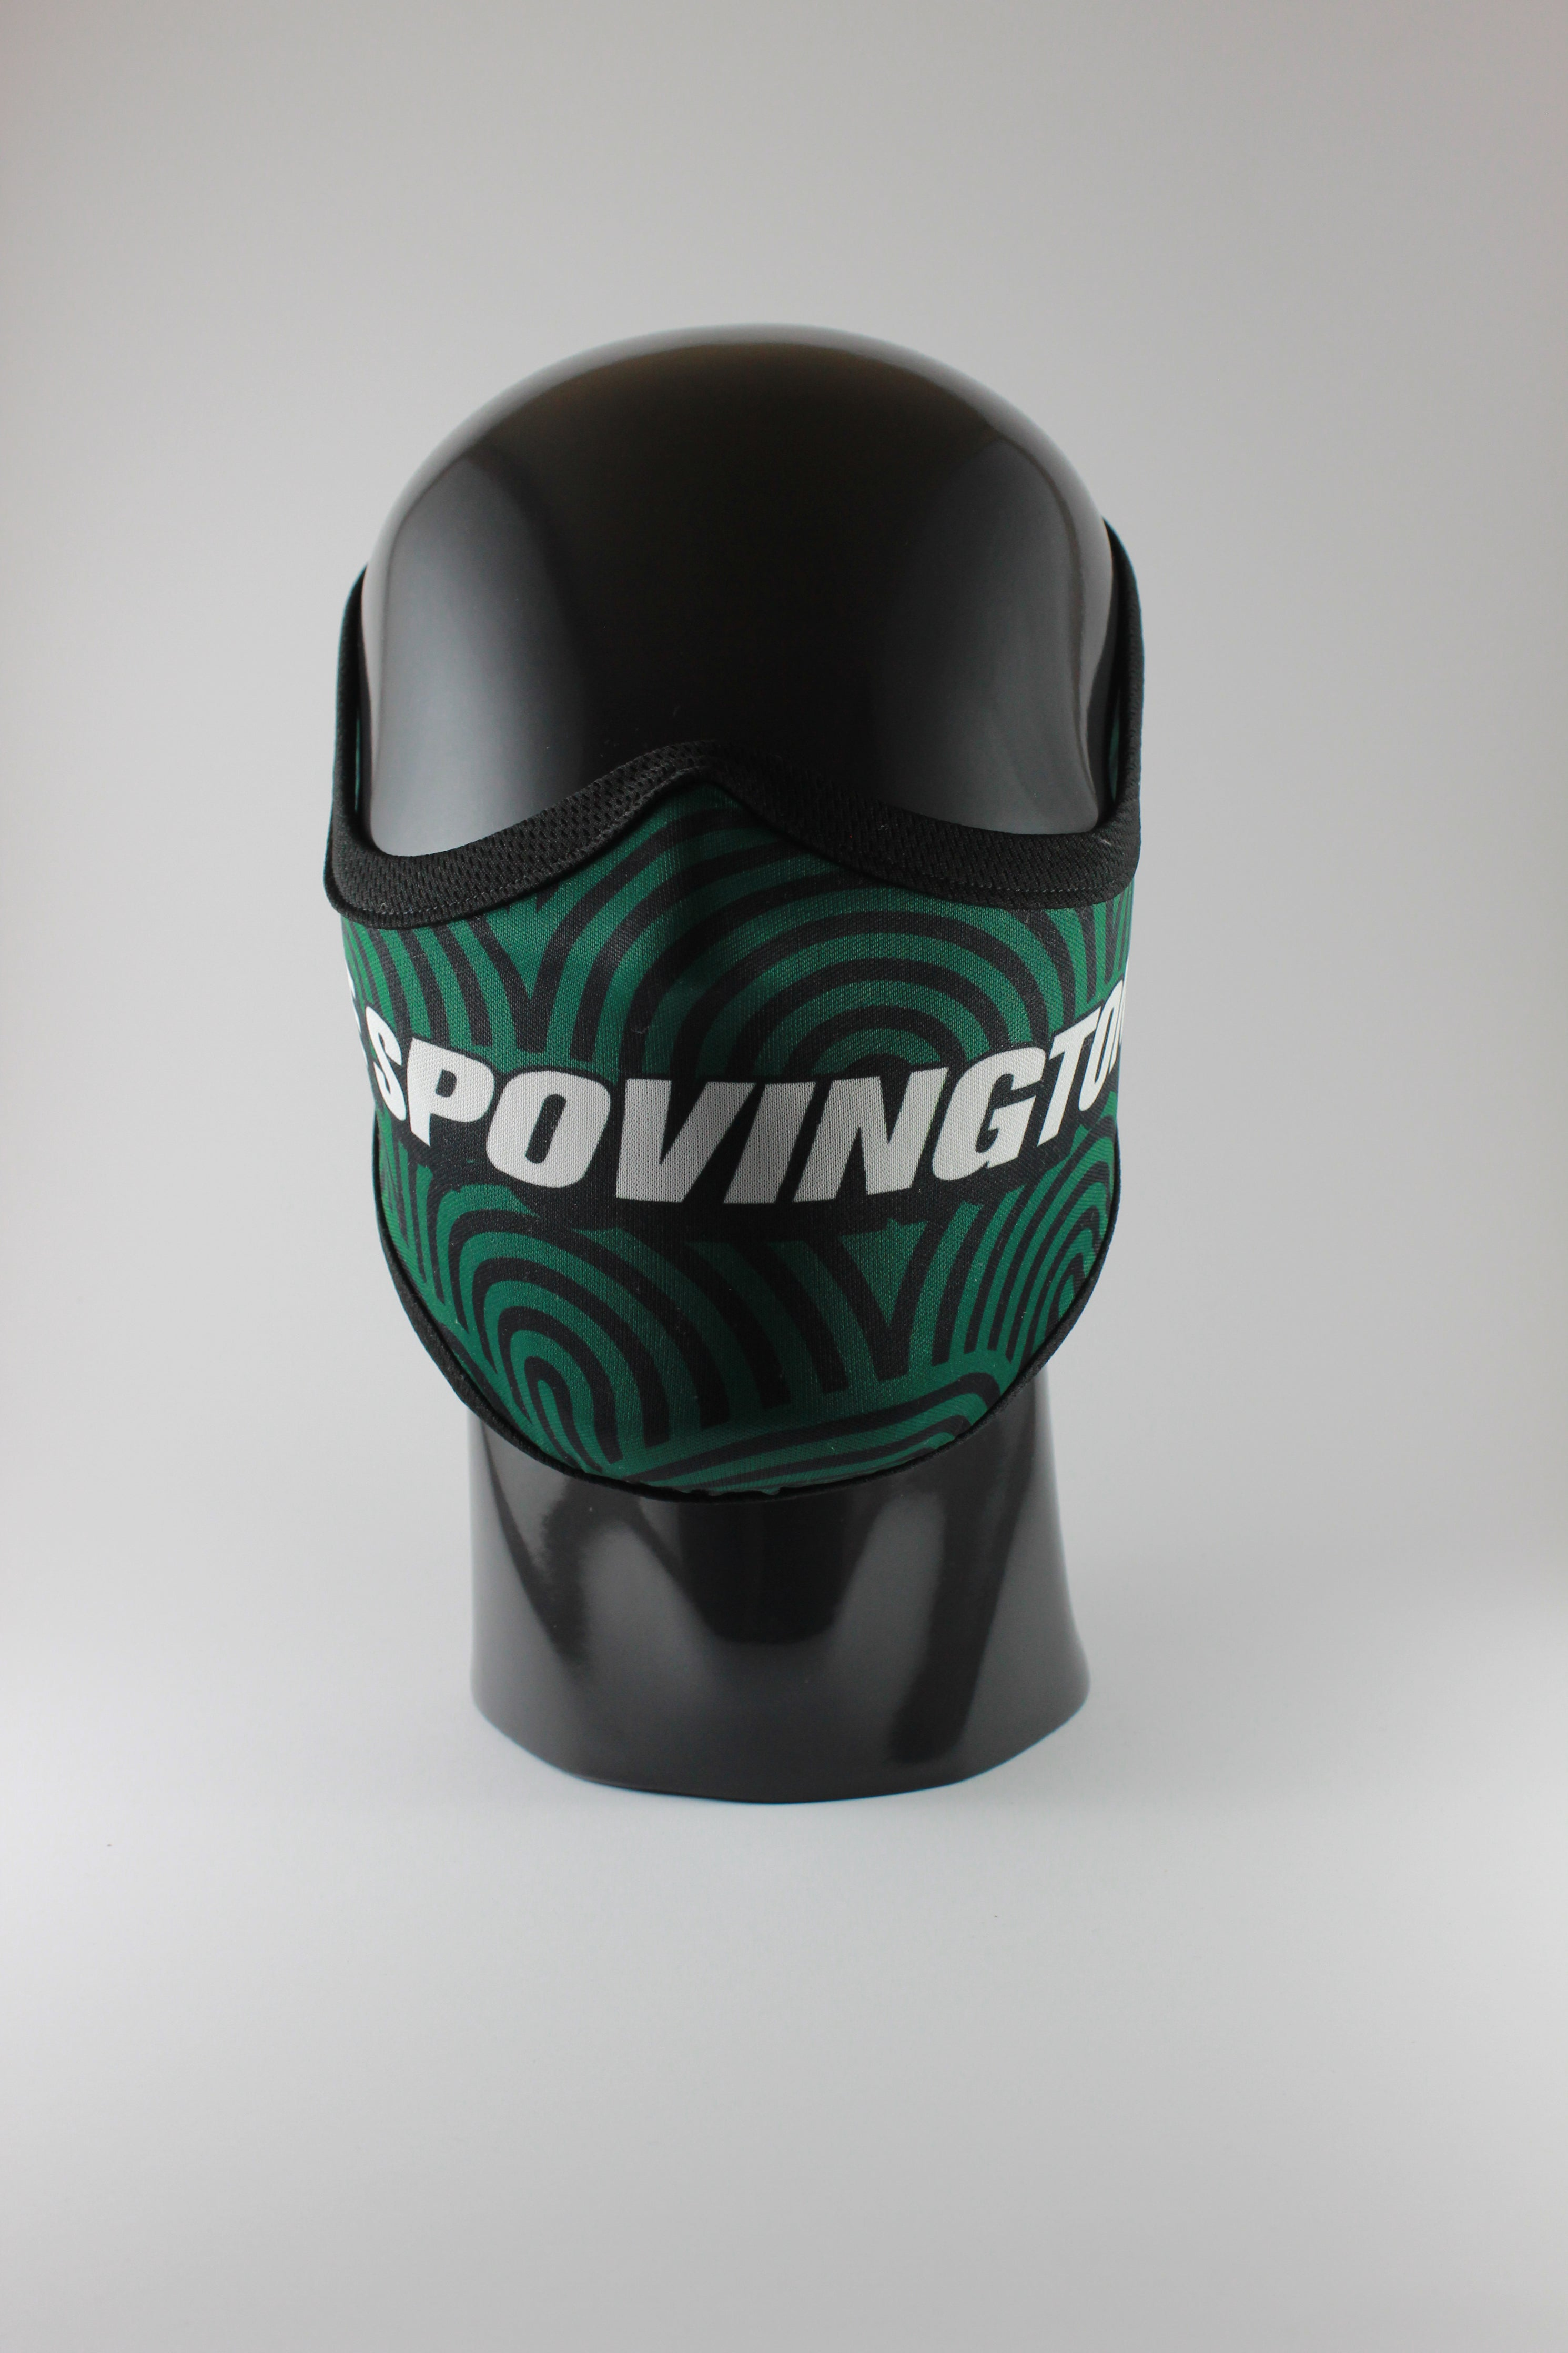 THE SPOVINGTONS Fudumala mask - OG Green